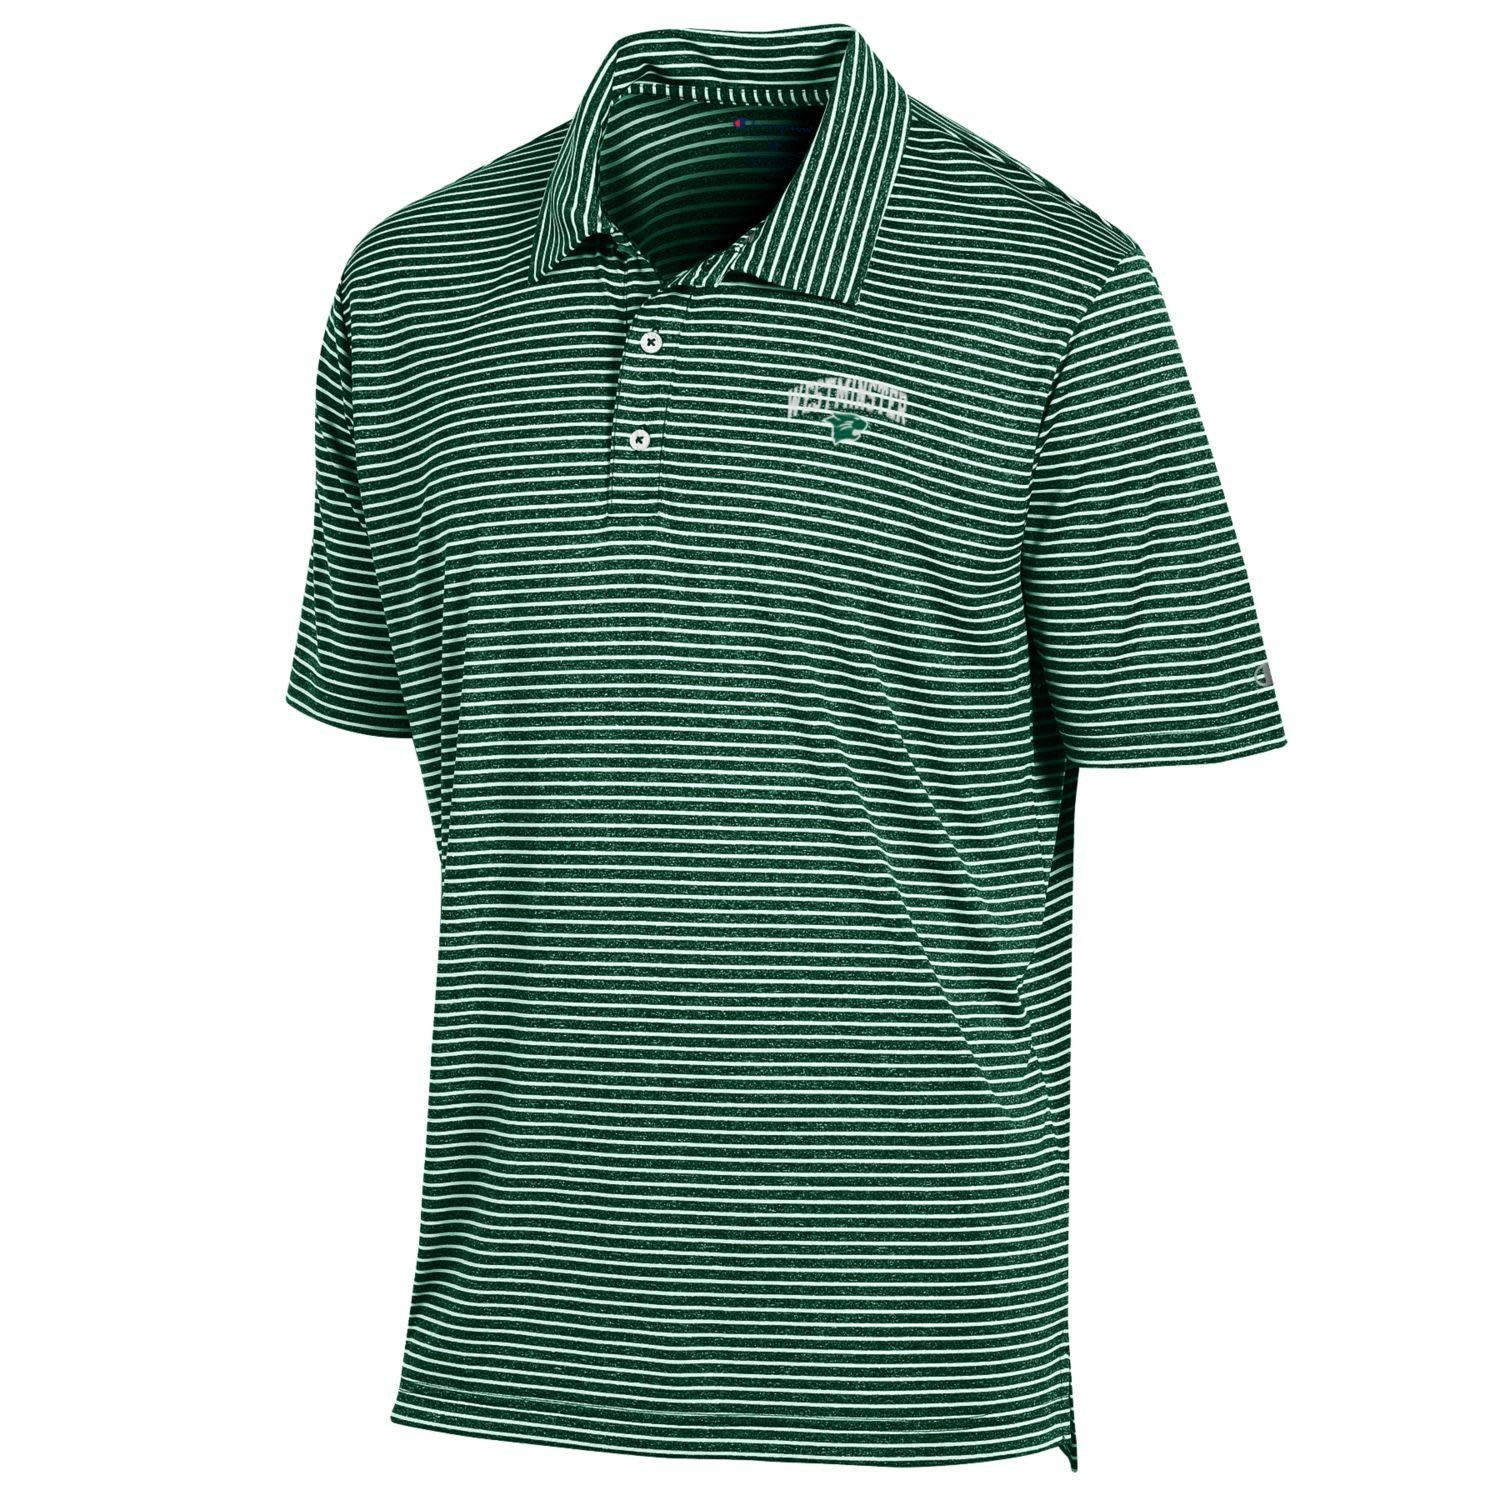 Champion Polo: Champion Green & White Stadium Stripe - WM over Logo